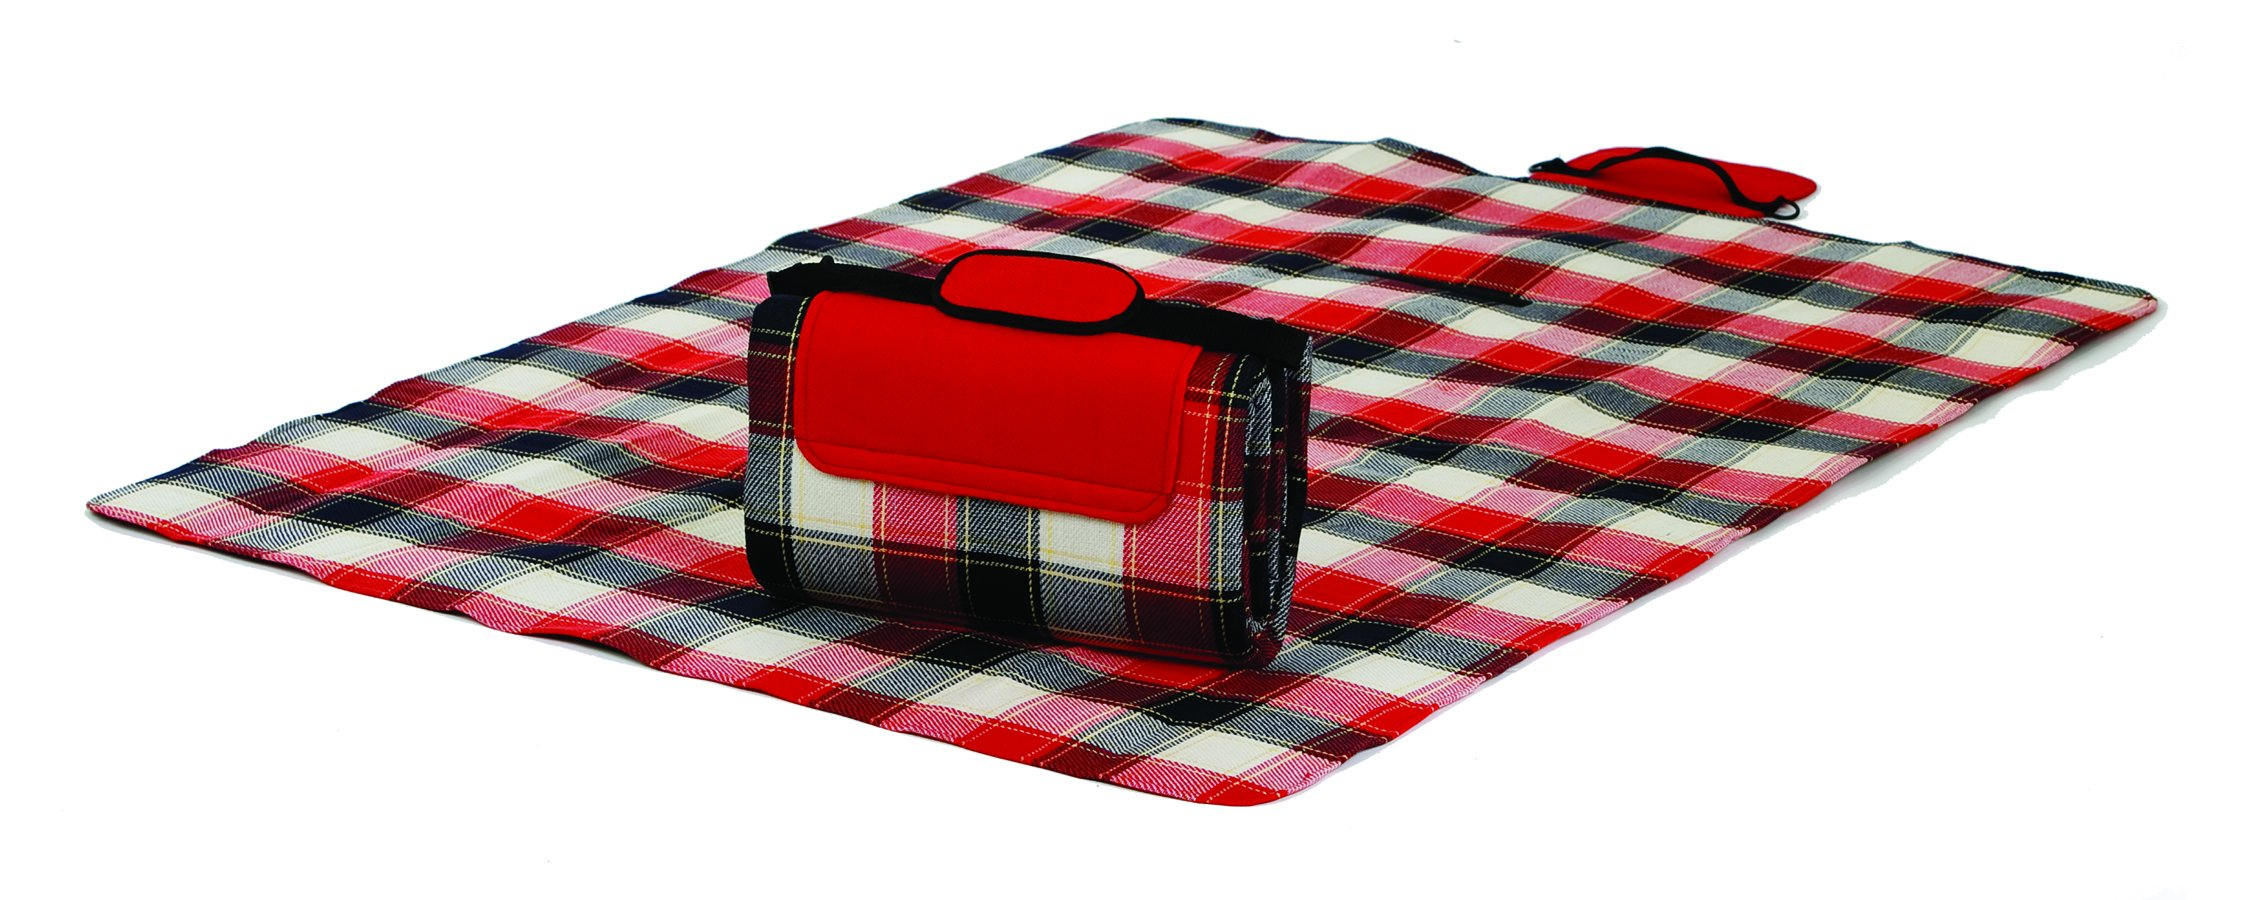 Mega Mat 100% Waterproof Backing All Season Picnic Blanket, Beach Mat And More Opens To 68''X 82'', Seats 4-6 Persons Plus Gear (Highland Plaid)